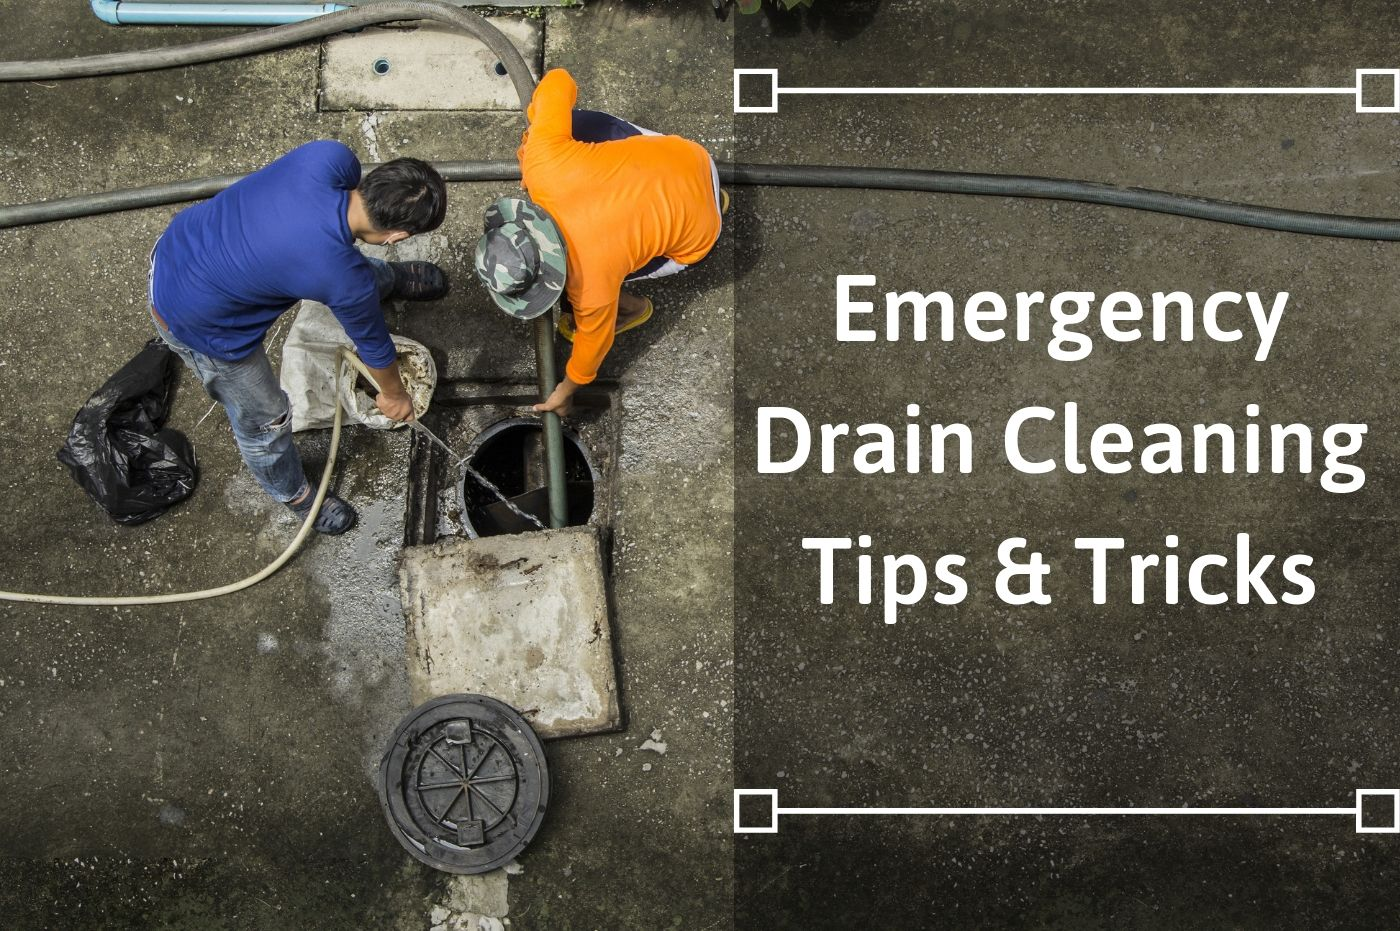 All Drain Cleaning Tips and Information